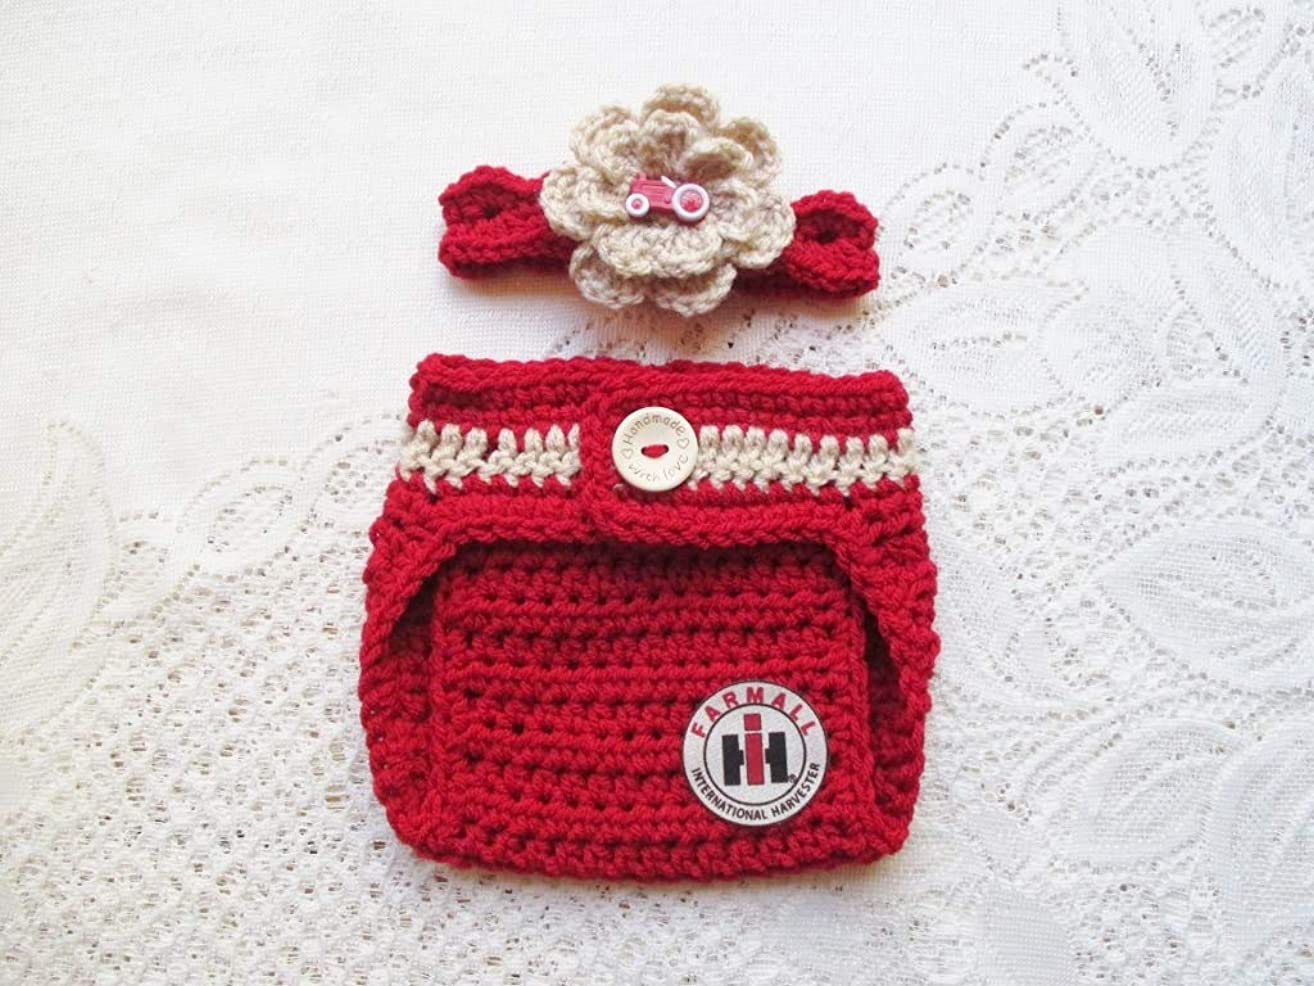 Crochet Baby International Harvester - Farmall Headband and Diaper Cover Set - Baby Photo Prop - Baby Shower Gift - Available in 0 to 6 Months